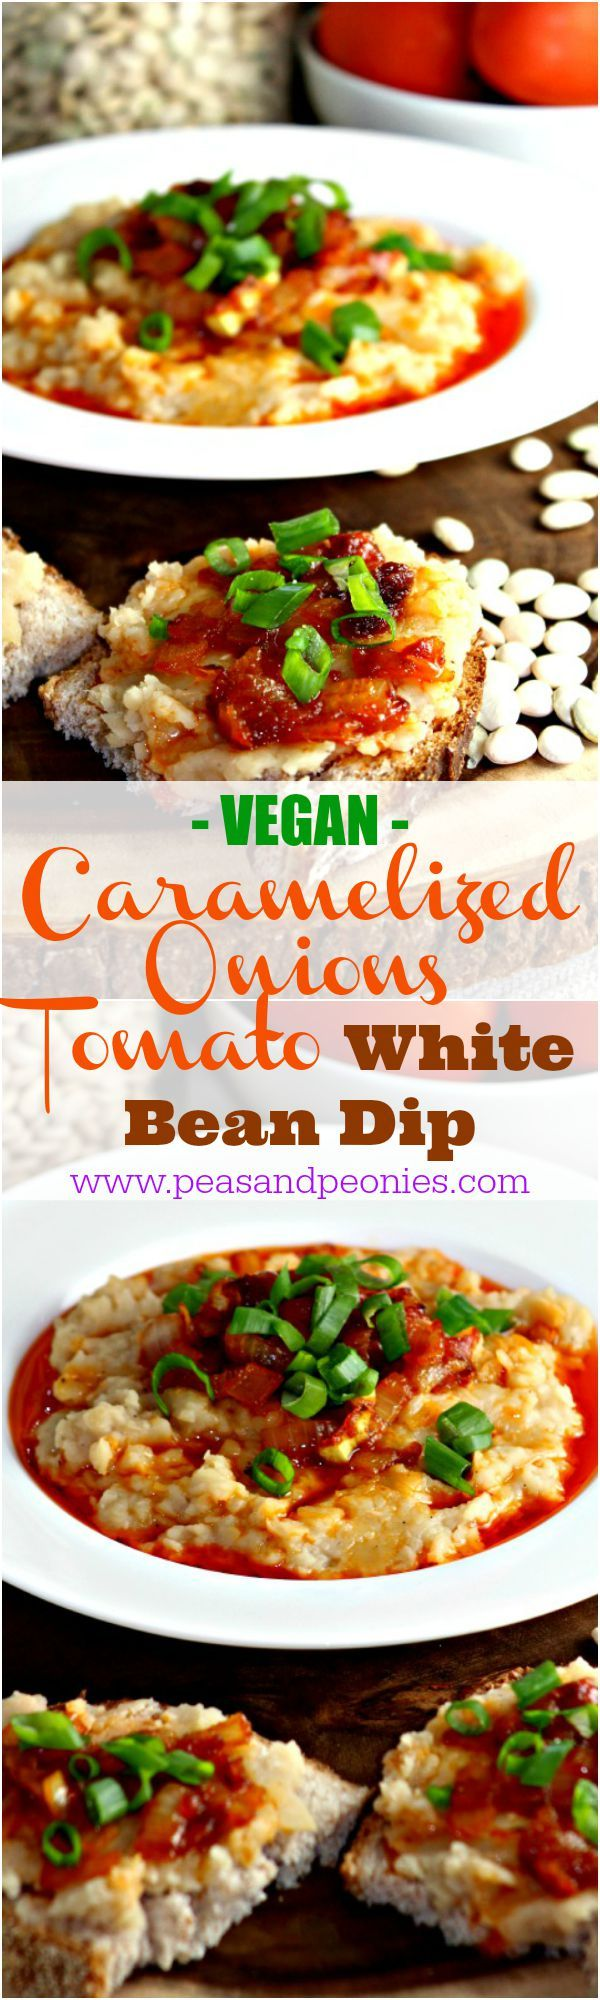 White Bean Dip with Caramelized Onions and Tomato Sauce - Peas and ...